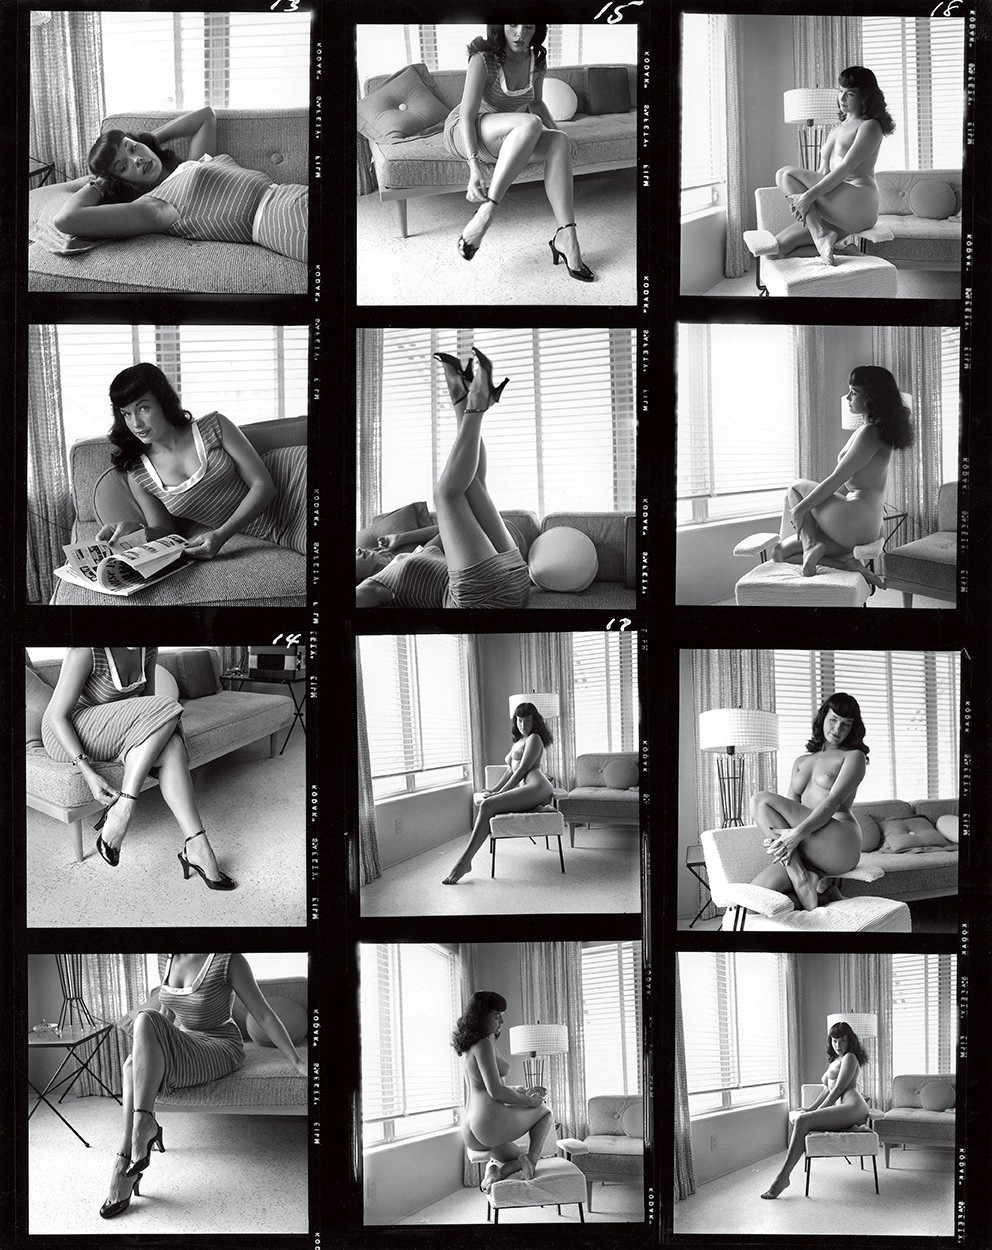 Bettie Page by Bunny Yeager Courtesy of Rizzoli